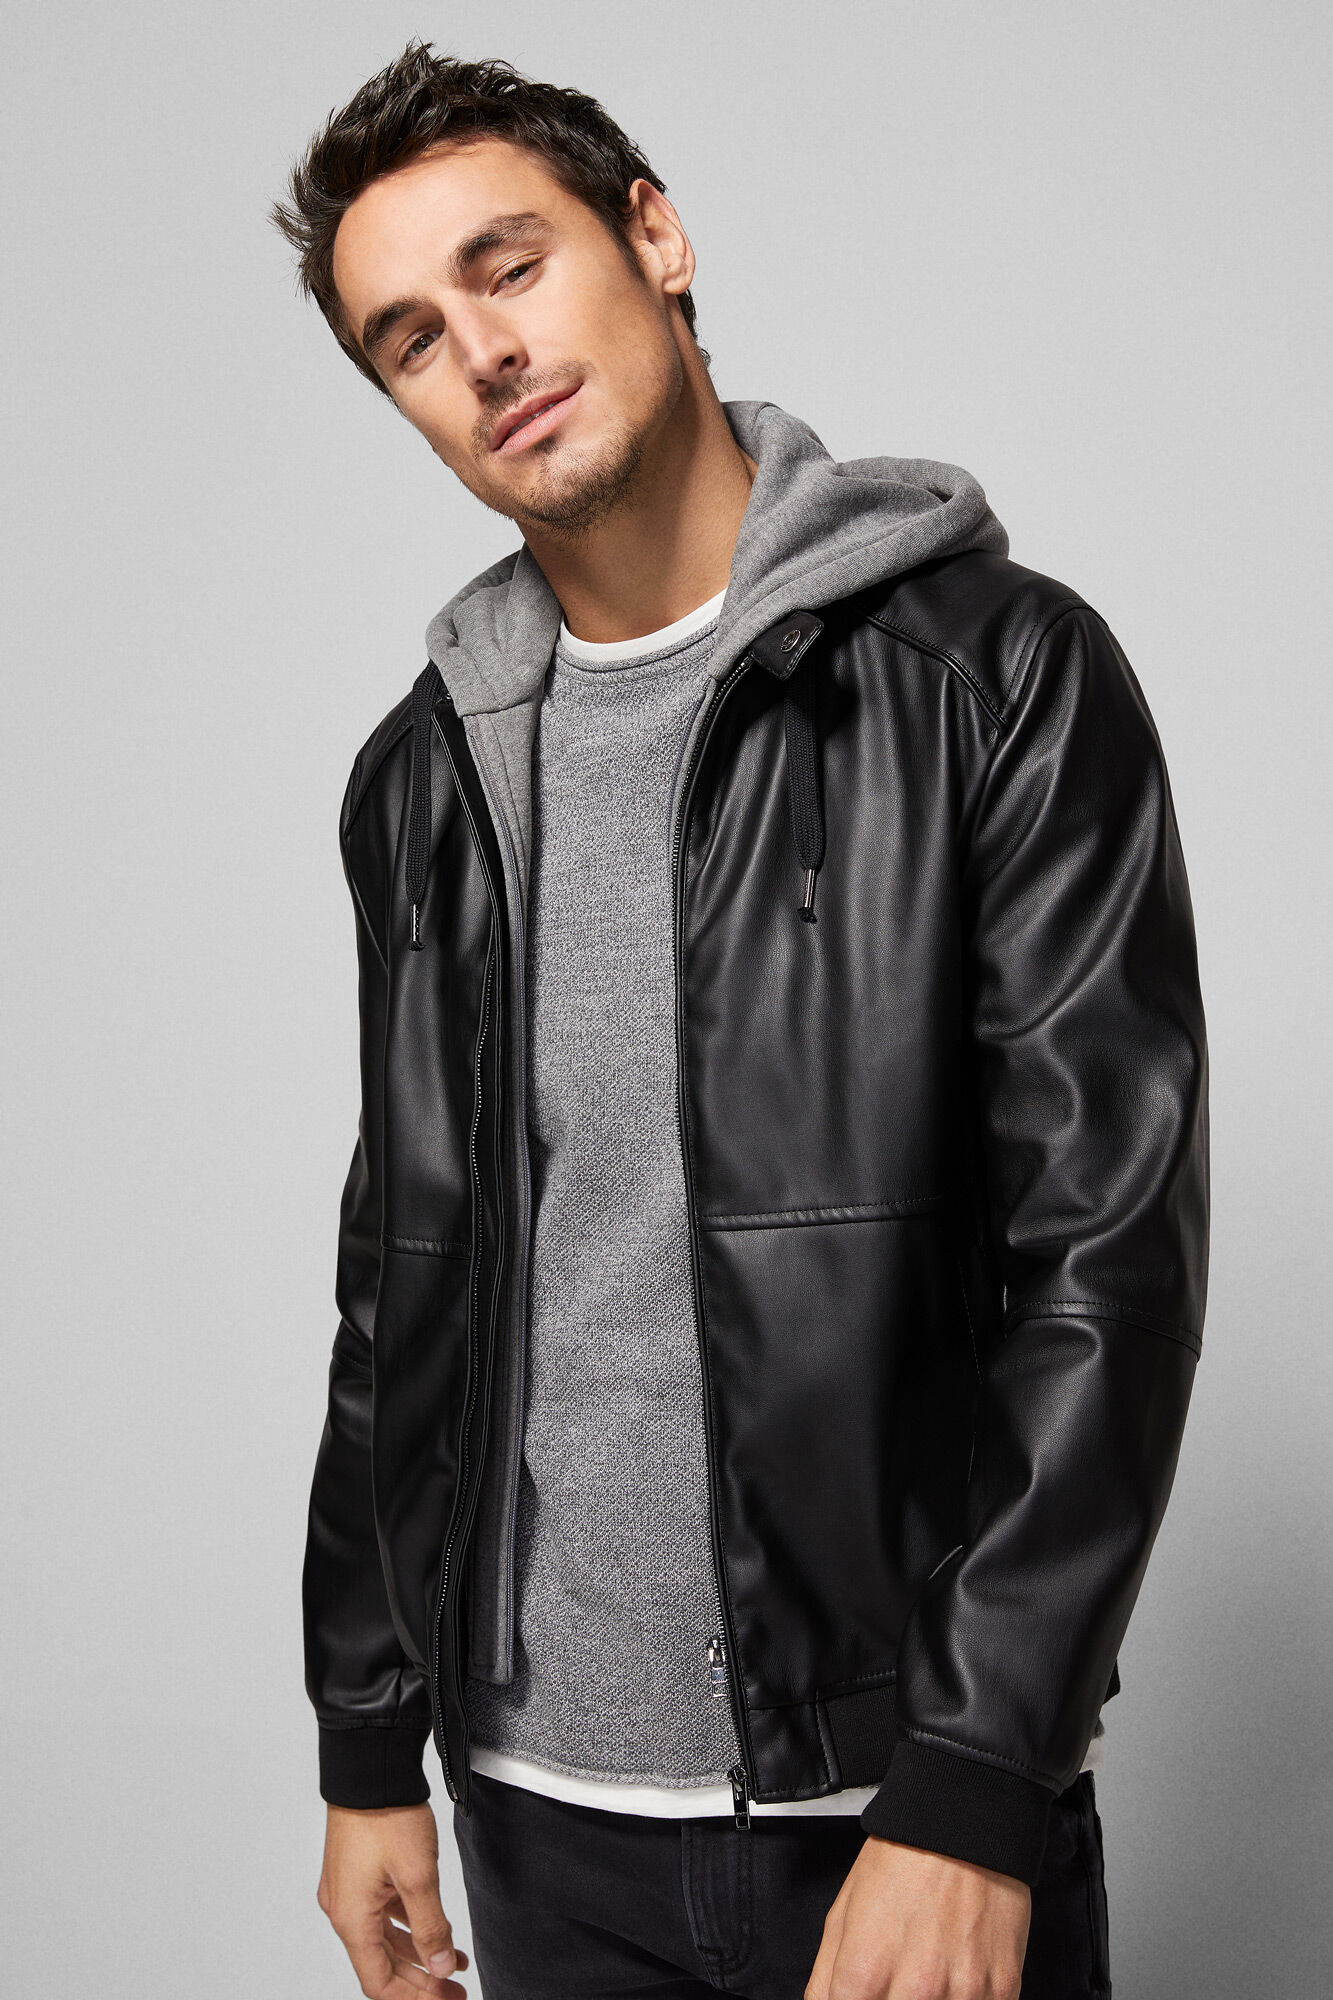 suave y ligero los Angeles numerosos en variedad Two-tone effect leatherette bomber jacket with plush hood